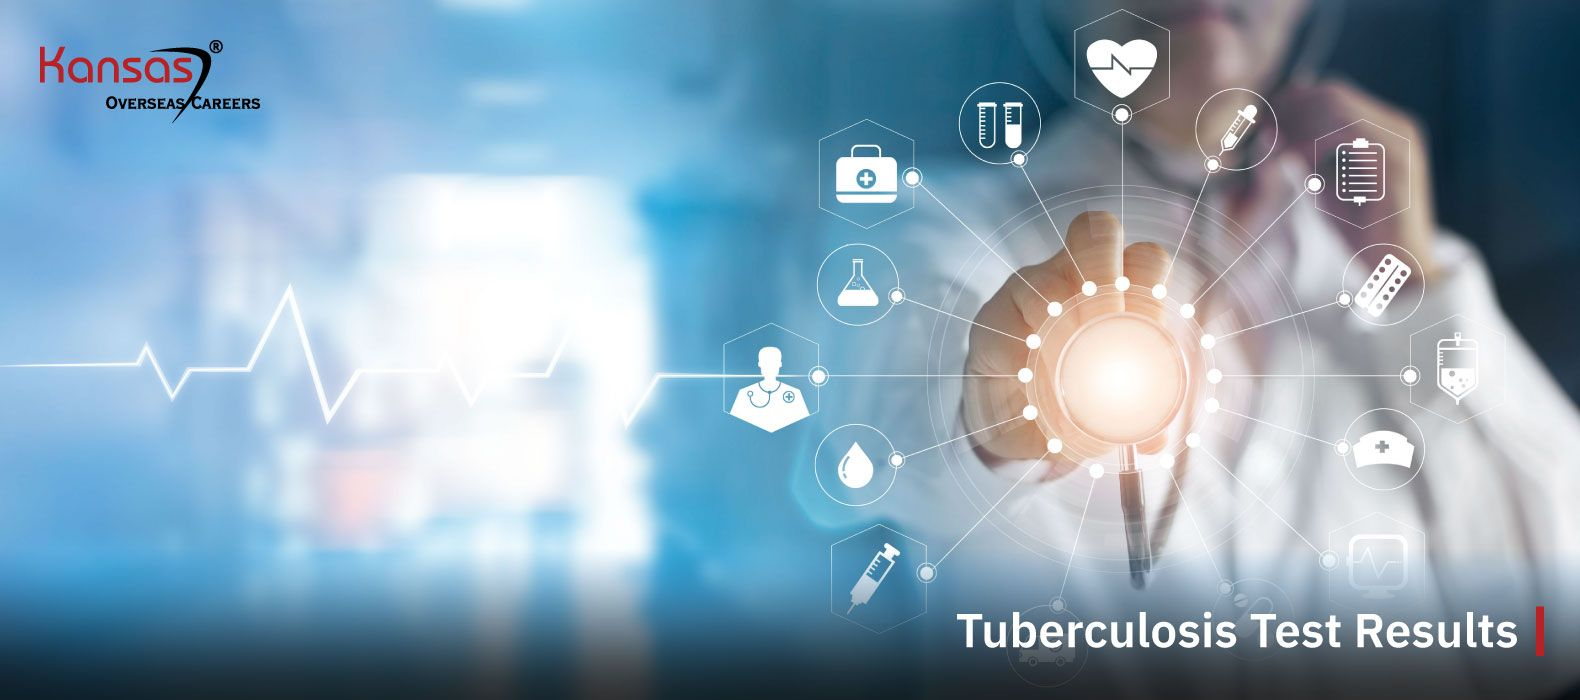 Tuberculosis-Test-Results